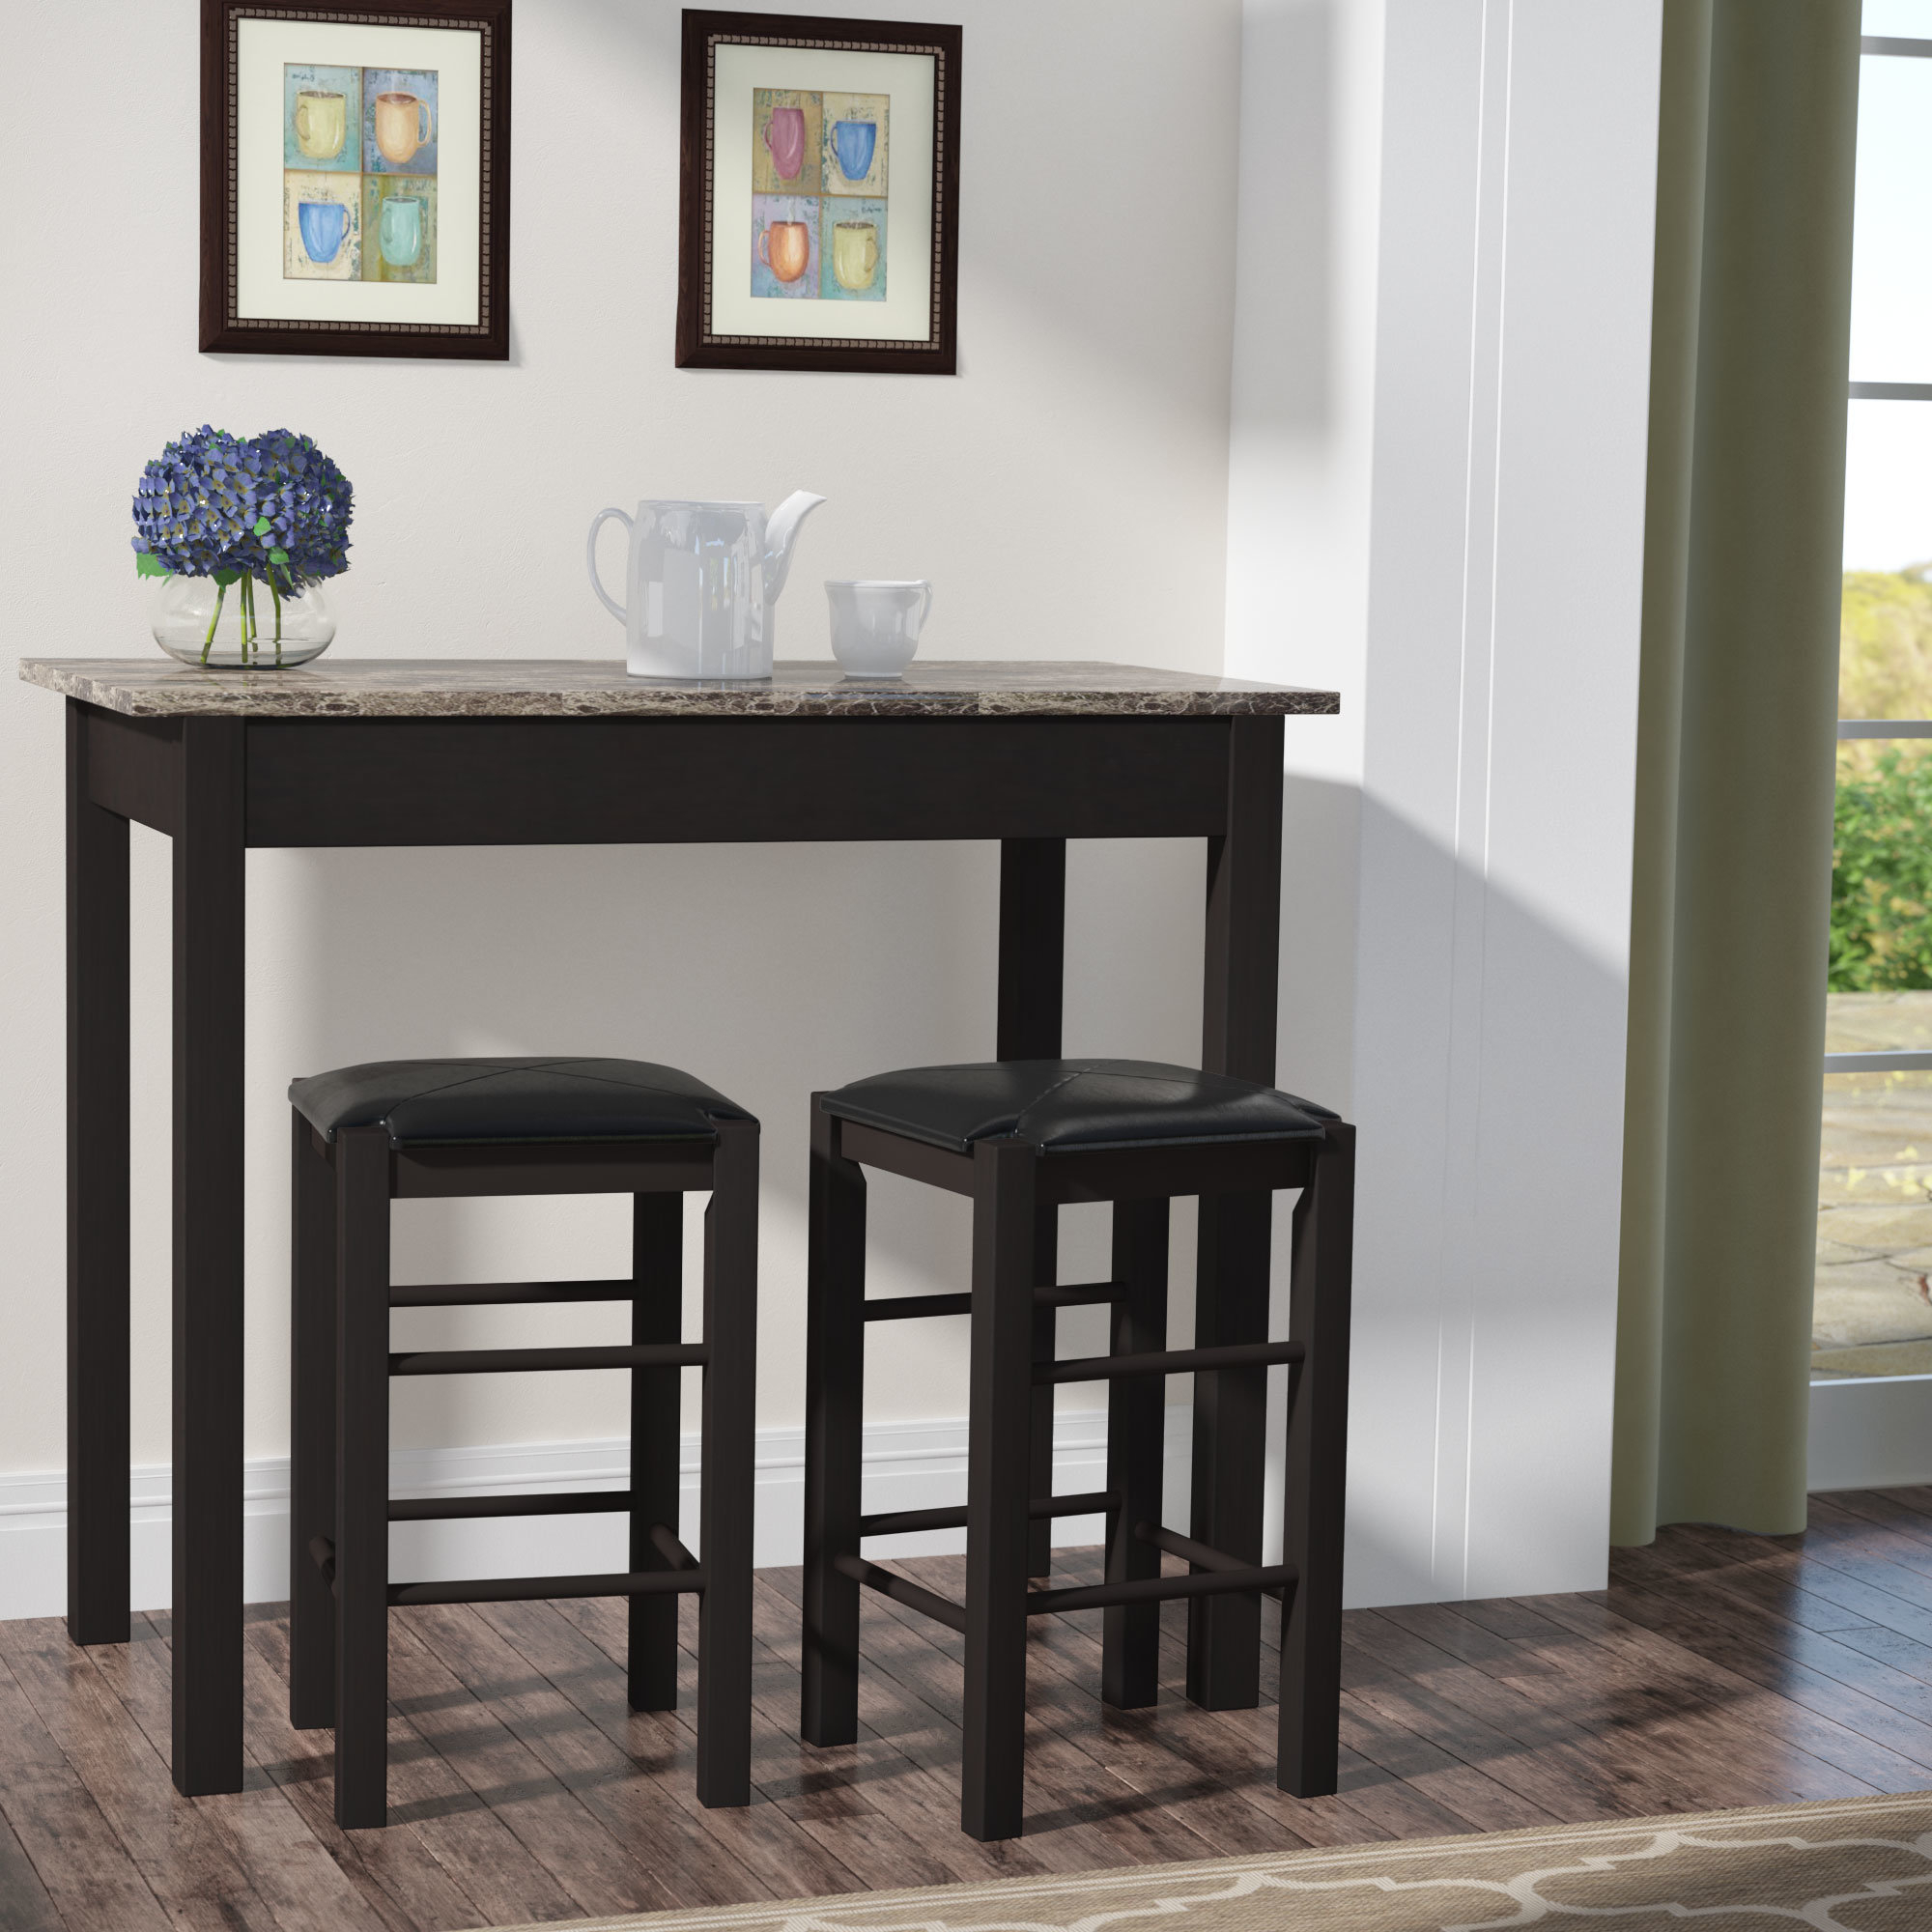 Sheetz 3 Piece Counter Height Dining Set Intended For Most Popular Penelope 3 Piece Counter Height Wood Dining Sets (View 4 of 20)